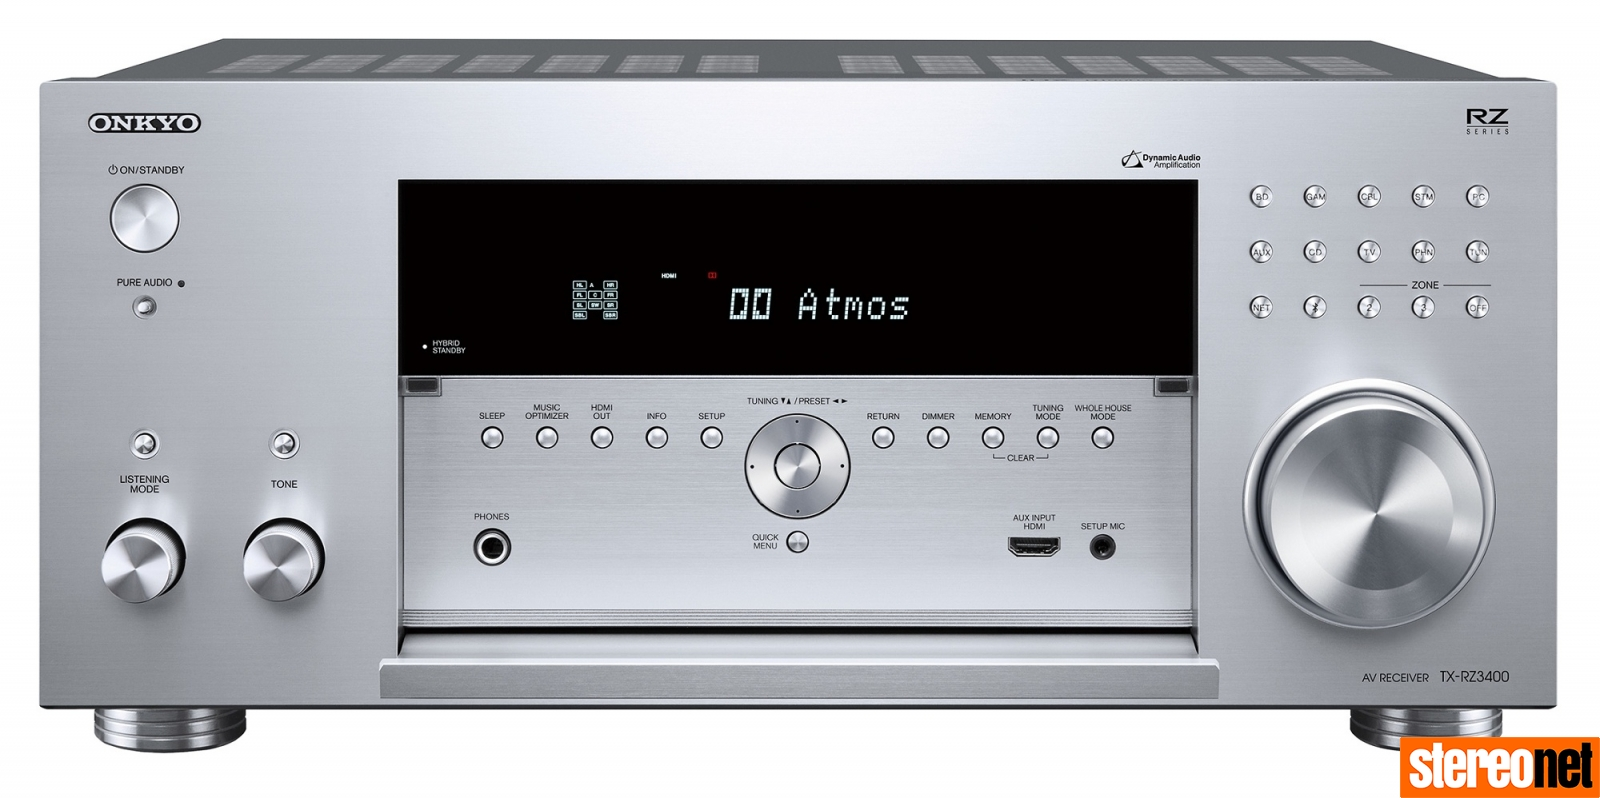 VOXX and Sharp interested in Onkyo